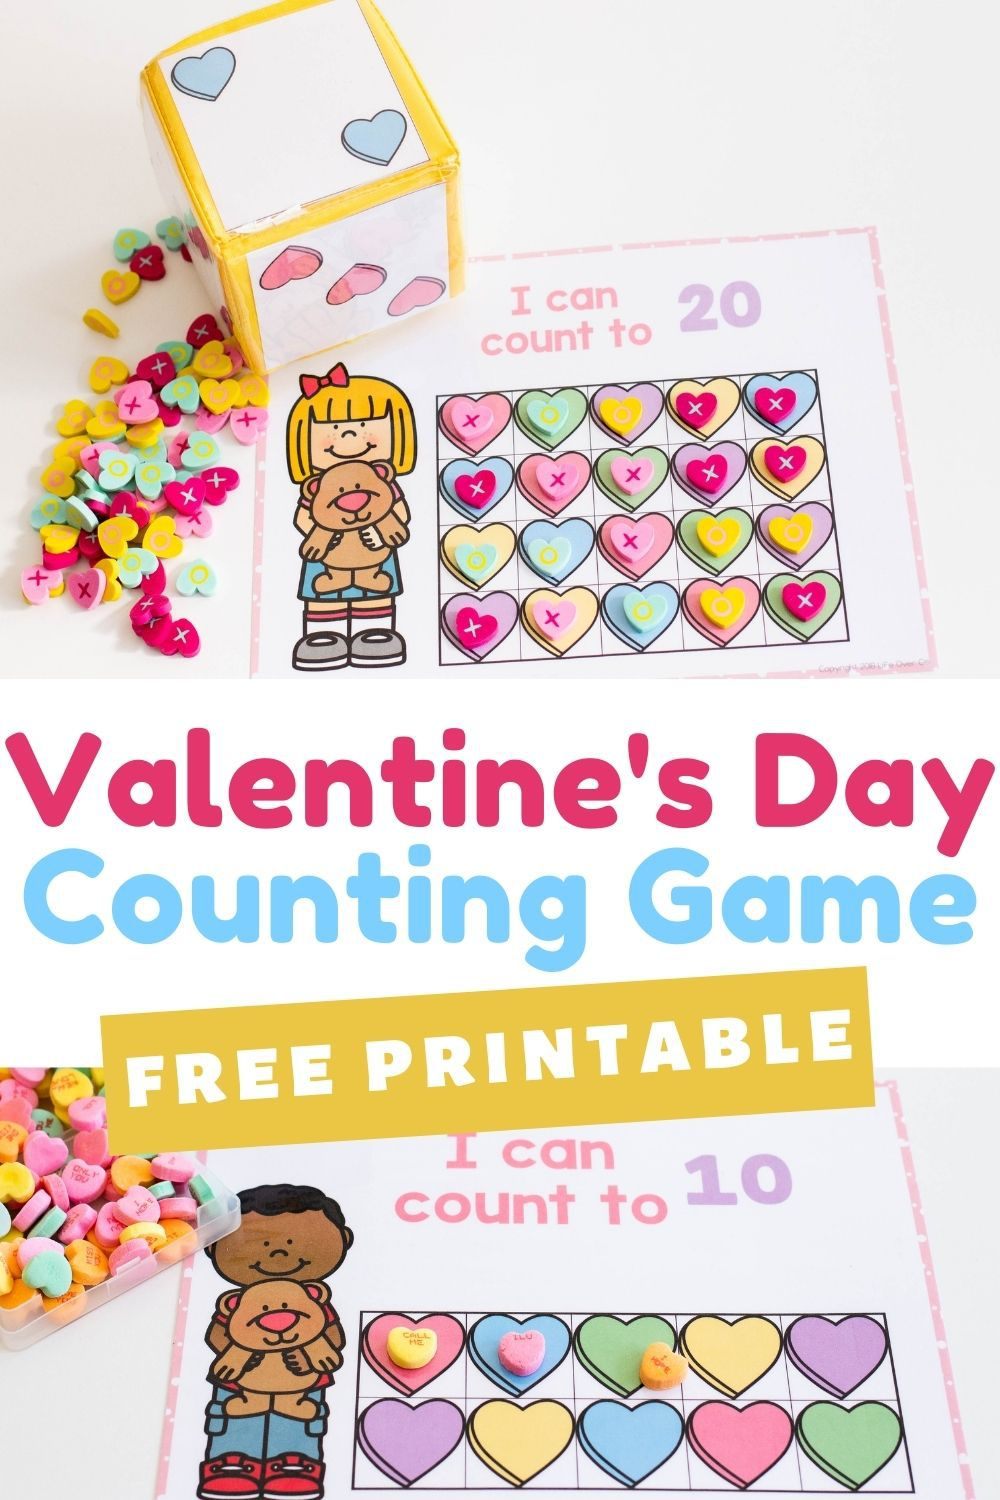 Free Printable Valentine's Day Counting Game